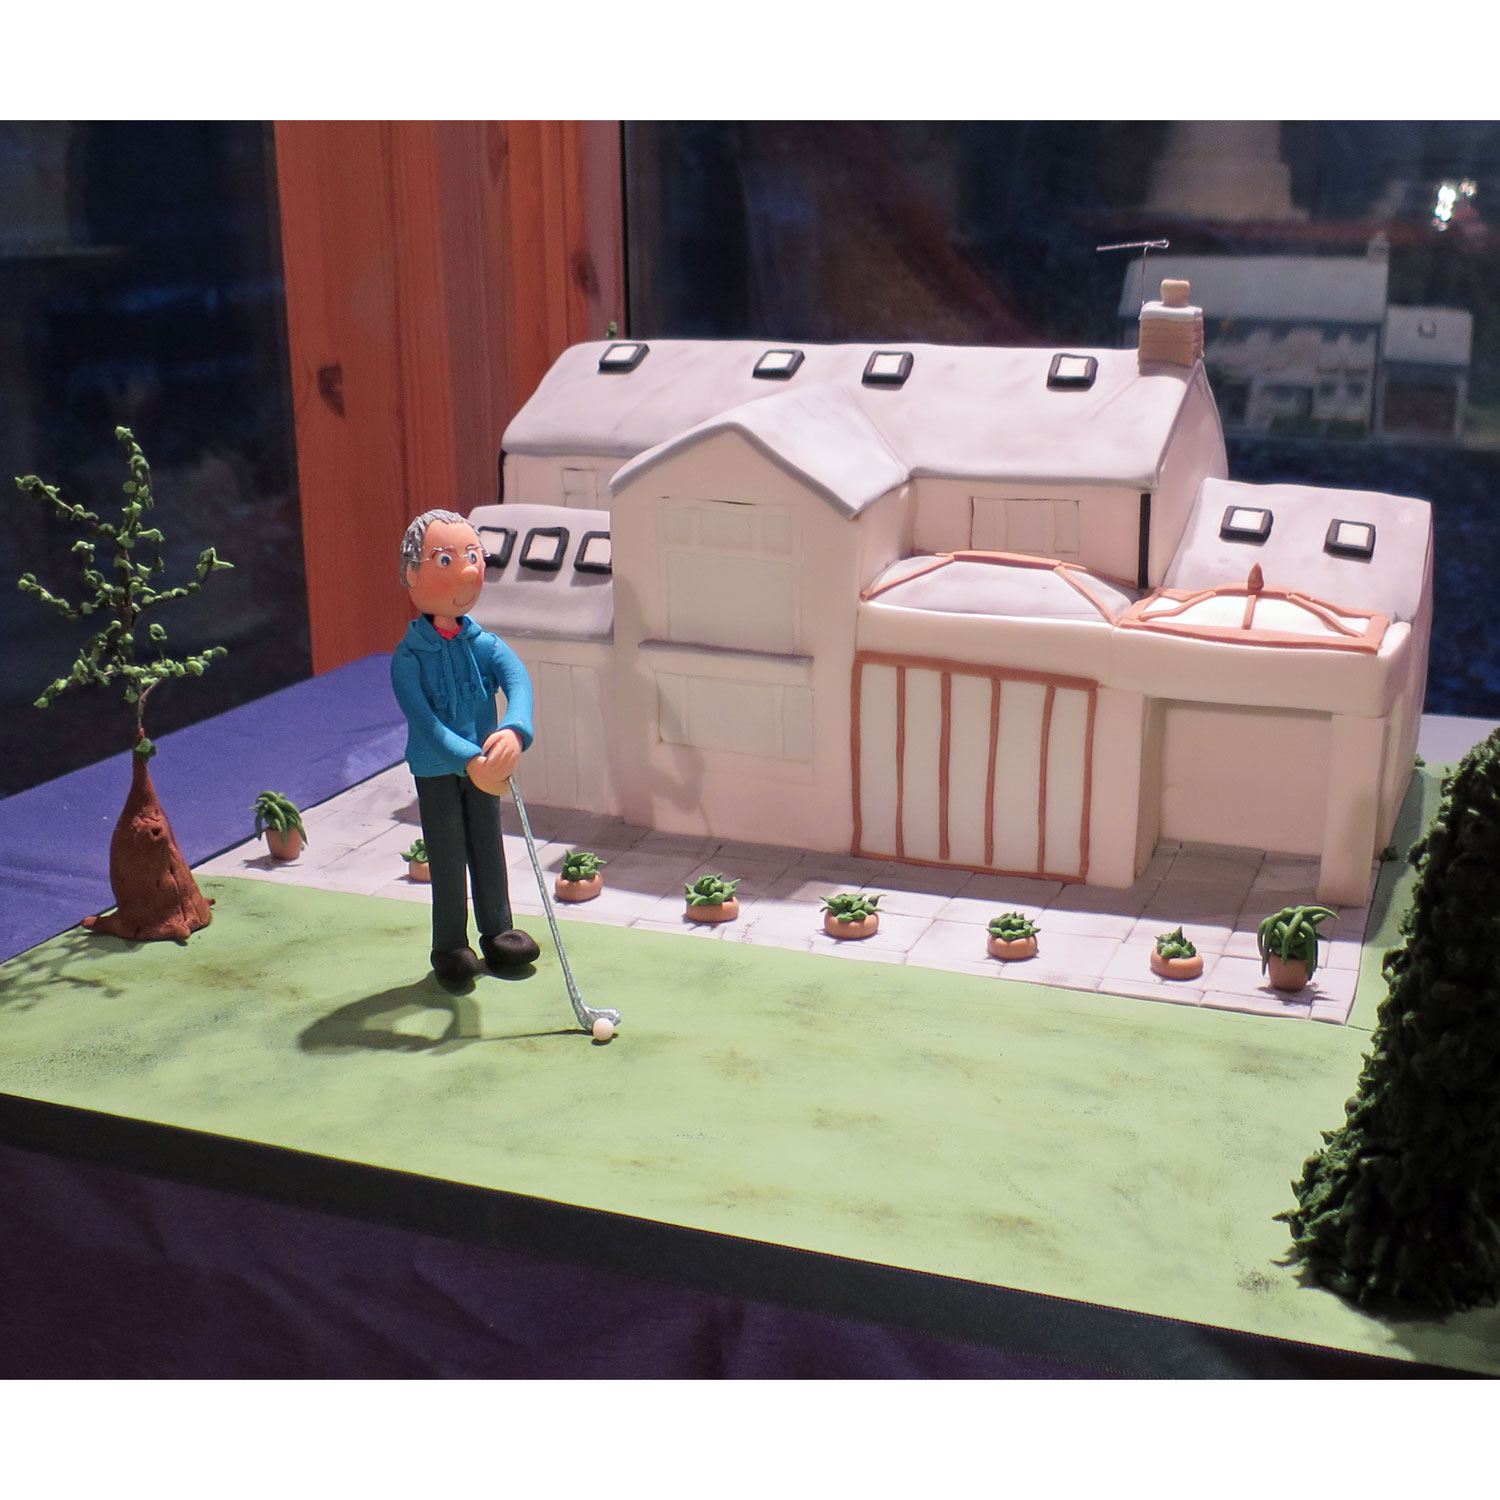 Sugarcraft Figure plays Pitch & Putt